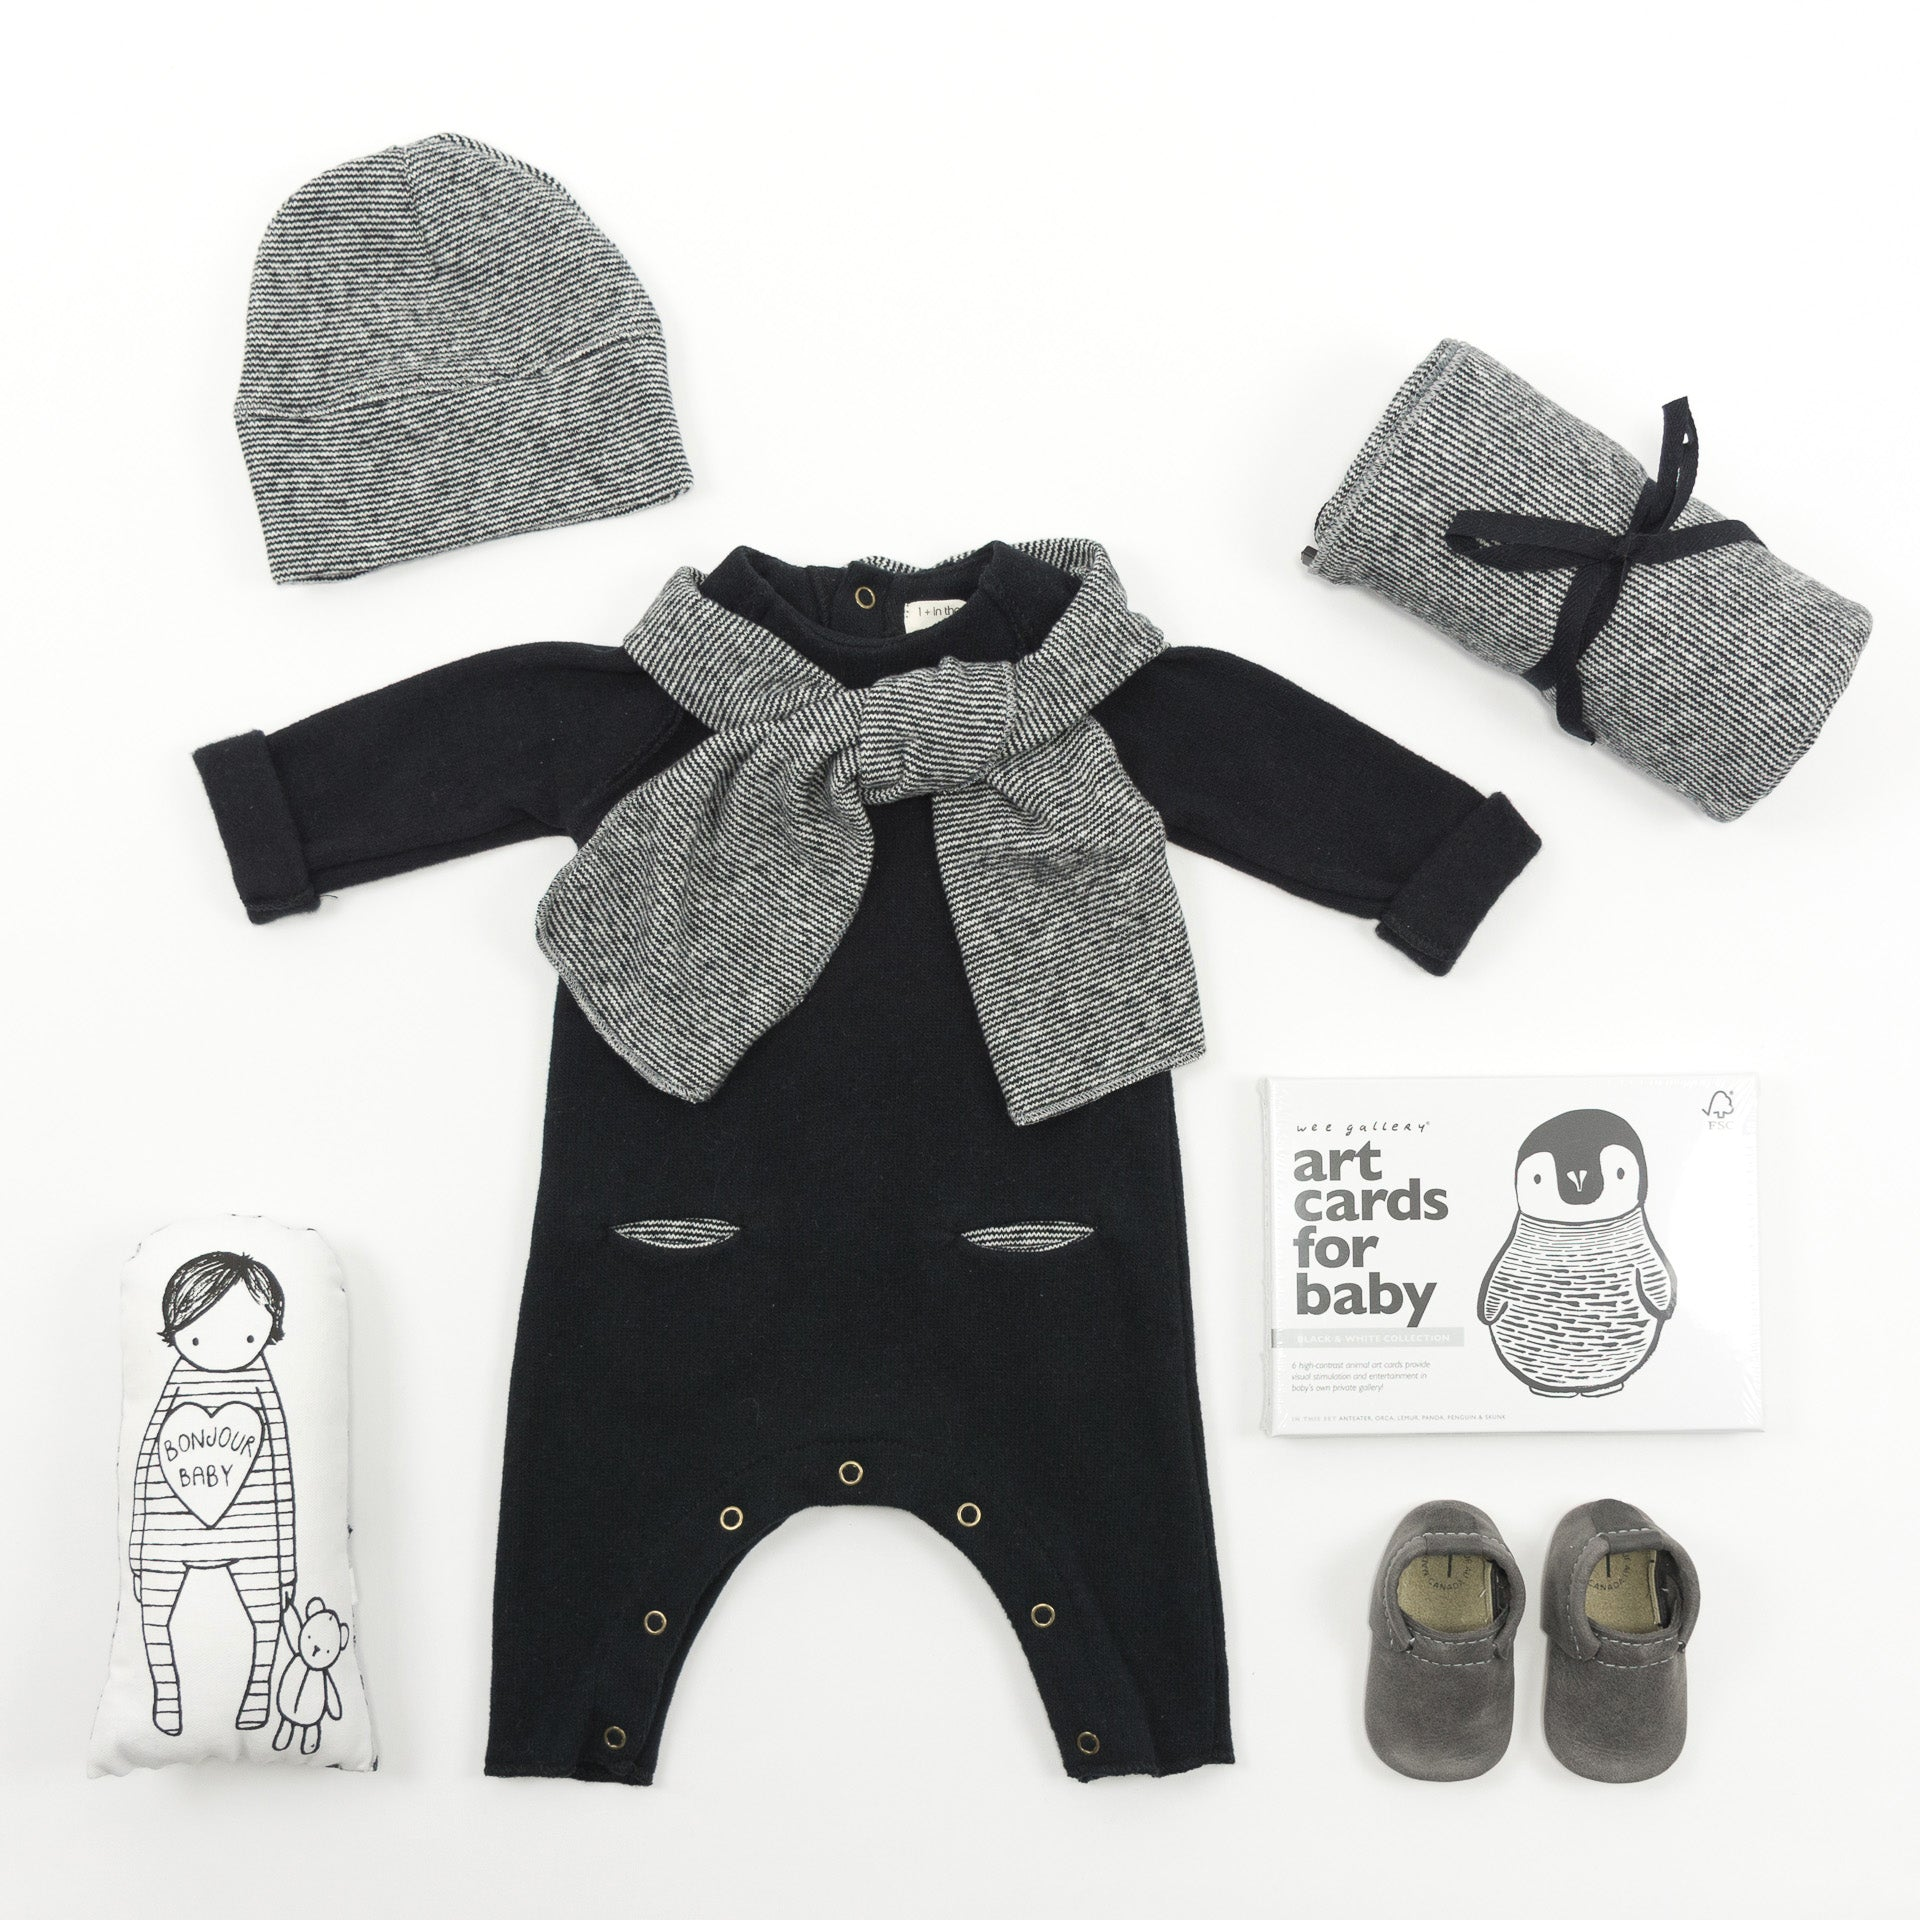 Monochrome designer Baby Gift Basket featuring 1+ in the Family